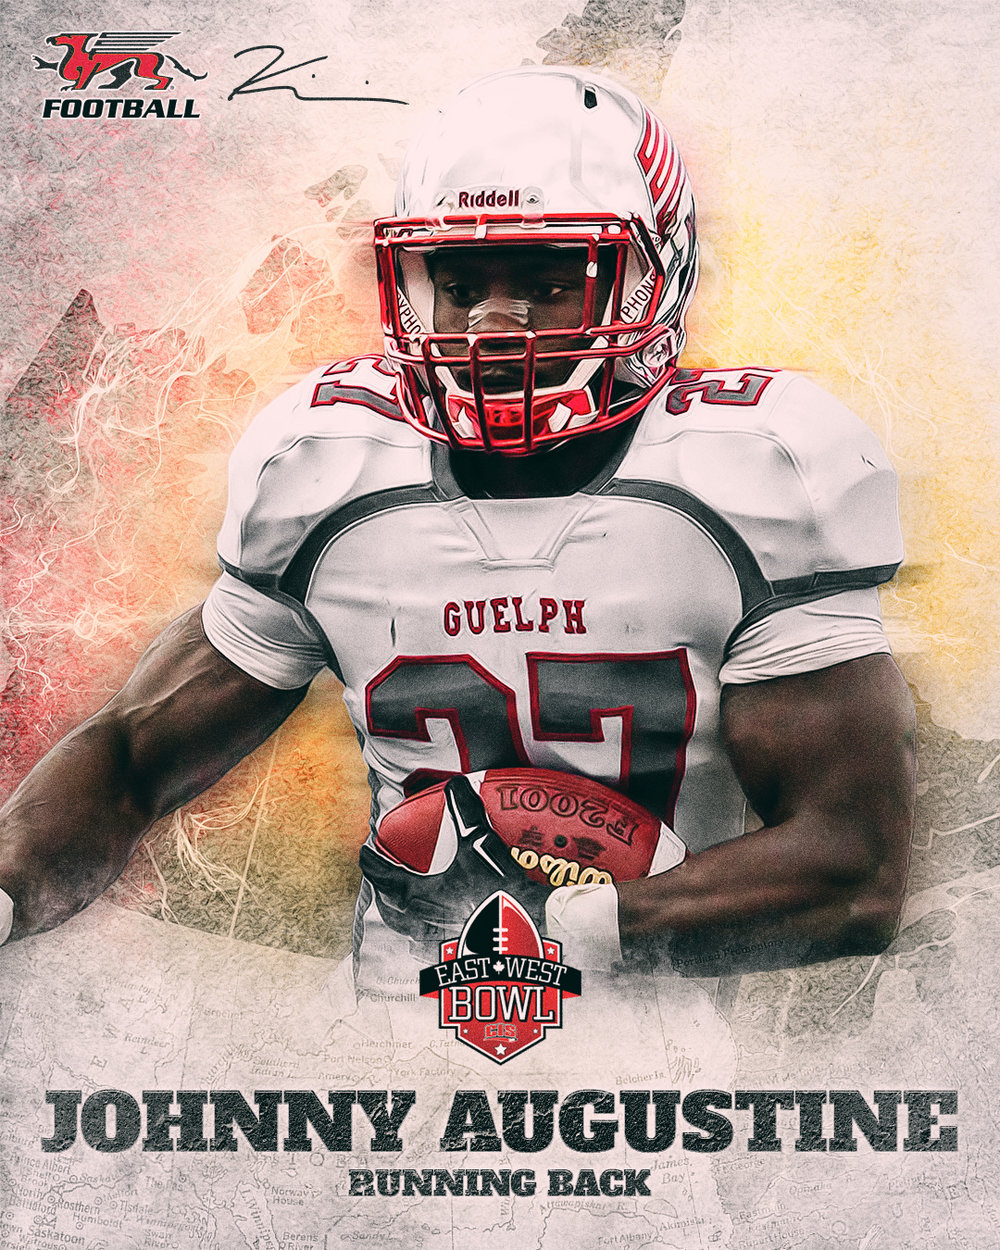 east west johnny augustine.JPG